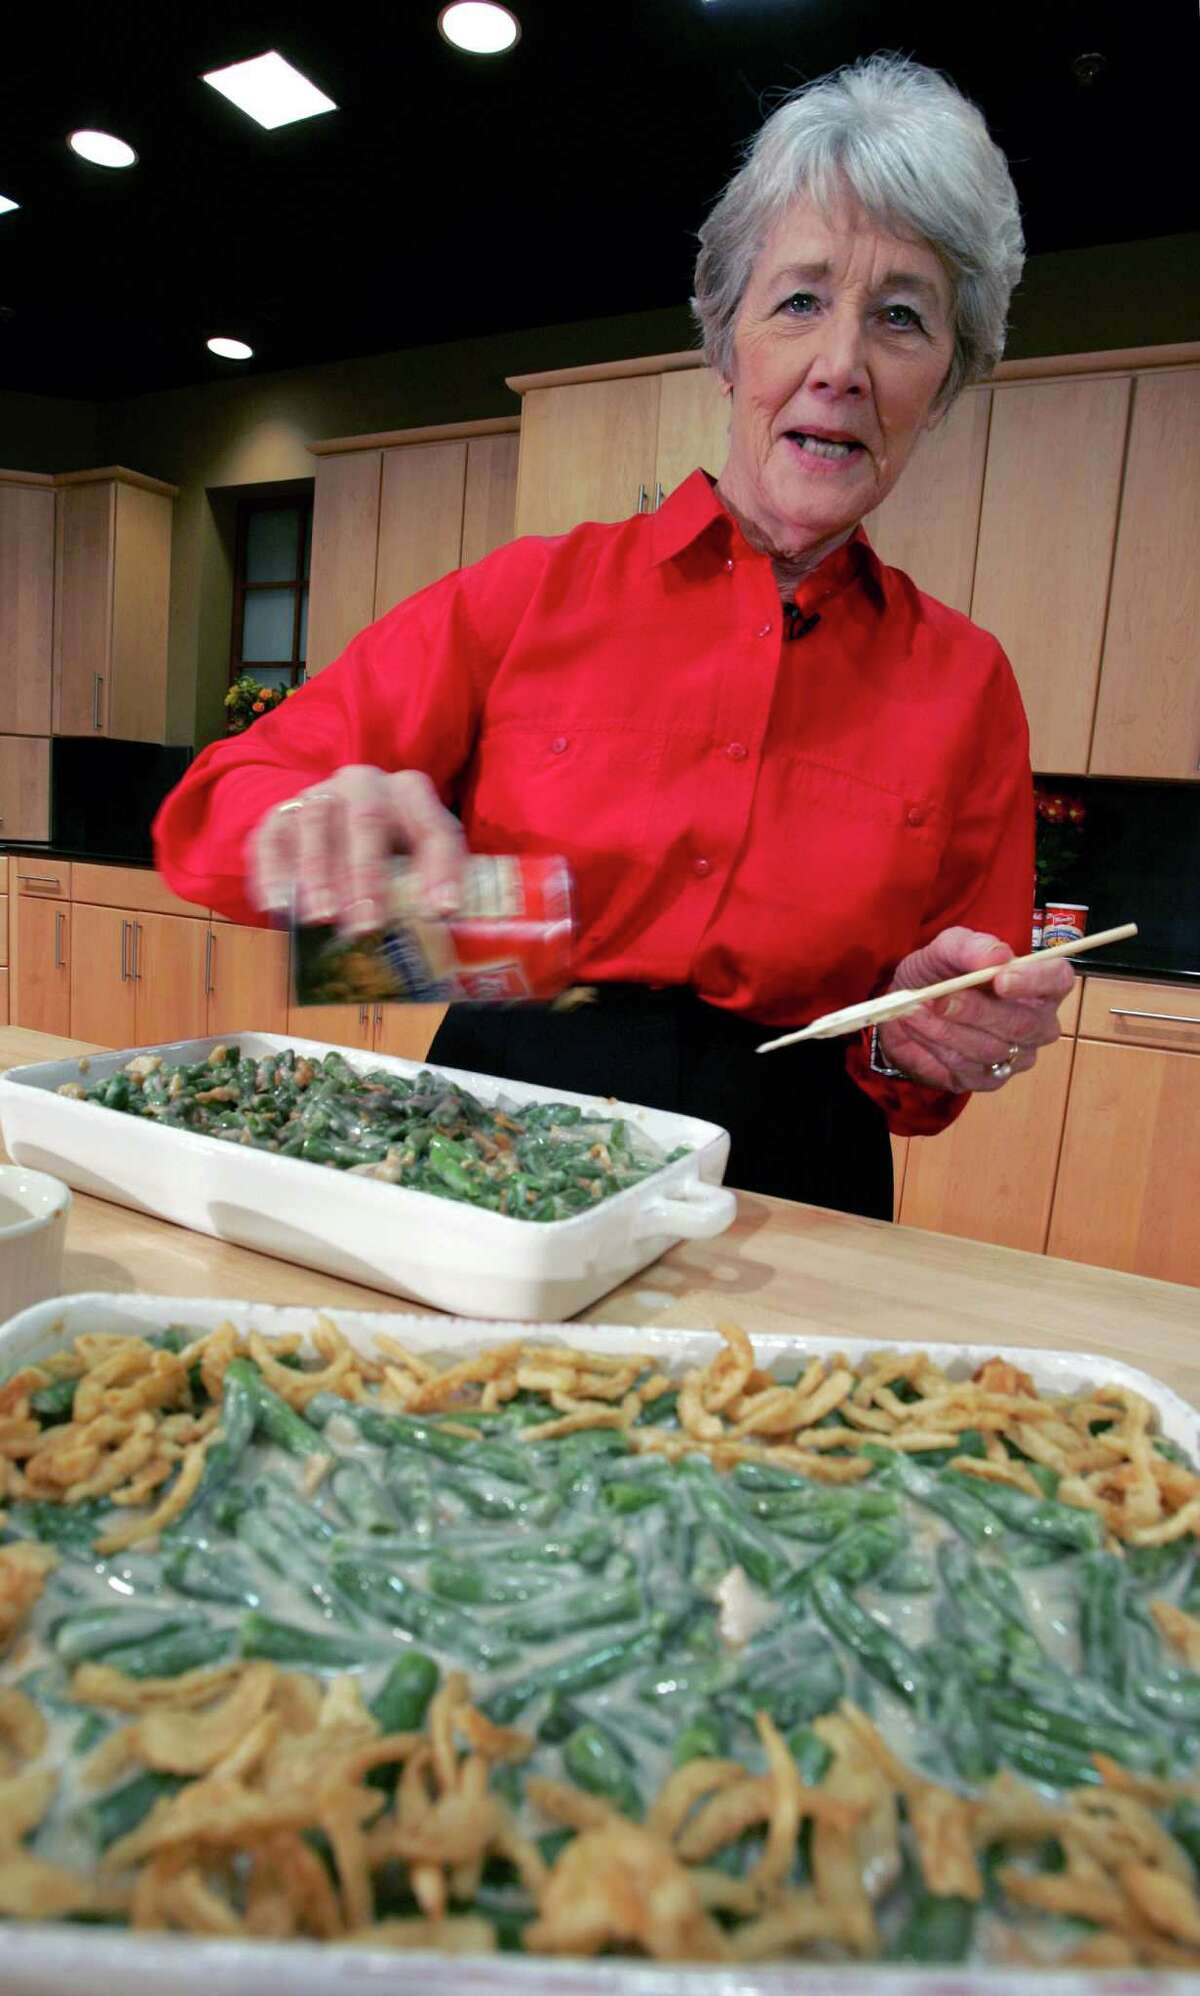 A Green Bean Cassorole sits in the foreground as Dorcas Reilly prepares another Tuesday, Nov. 15, 2005 at the Campbell Soup Co. corporate kitchen in Camden, N.J.. Reilly, a Campbell Soup kitchen supervisor in 1955, was the driving force behind the dish, company officials say. But Reilly, 79, doesn't remember having a hand in it, saying the dish was among hundreds she created (after all, she helped create a tomato soup meatloaf, a tuna noodle casserole and Sloppy Joe-like ``souperburgers''). (AP Photo/Mel Evans) A Green Bean Cassorole sits in the foreground as Dorcas Reilly prepares another Tuesday, Nov. 15, 2005 at the Campbell Soup Co. corporate kitchen in Camden, N.J.. Reilly, a Campbell Soup kitchen supervisor in 1955, was the driving force behind the dish, company officials say. But Reilly, 79, doesn't remember having a hand in it, saying the dish was among hundreds she created (after all, she helped create a tomato soup meatloaf, a tuna noodle casserole and Sloppy Joe-like ``souperburgers'').